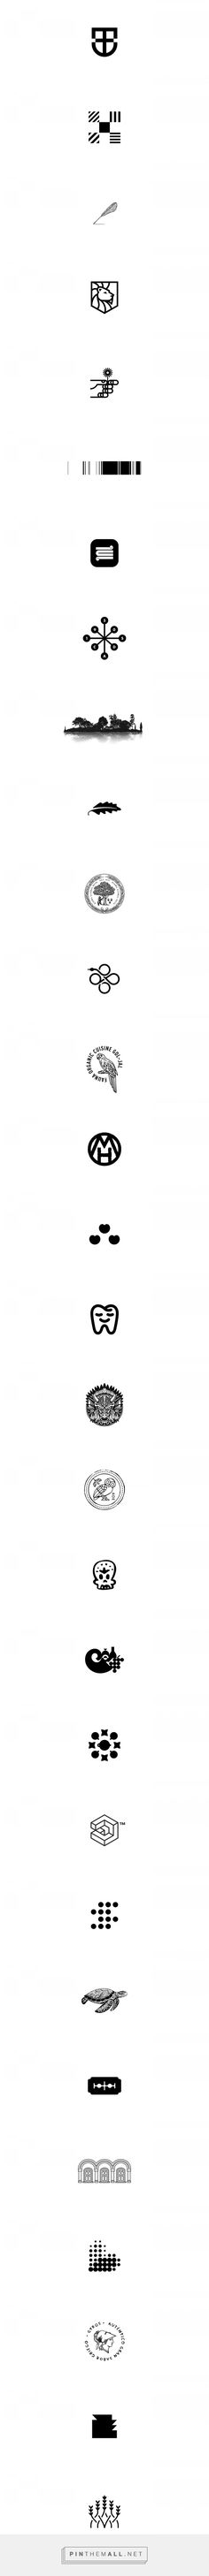 50 Icons & Monograms. on Behance... - a grouped images picture - Pin Them All